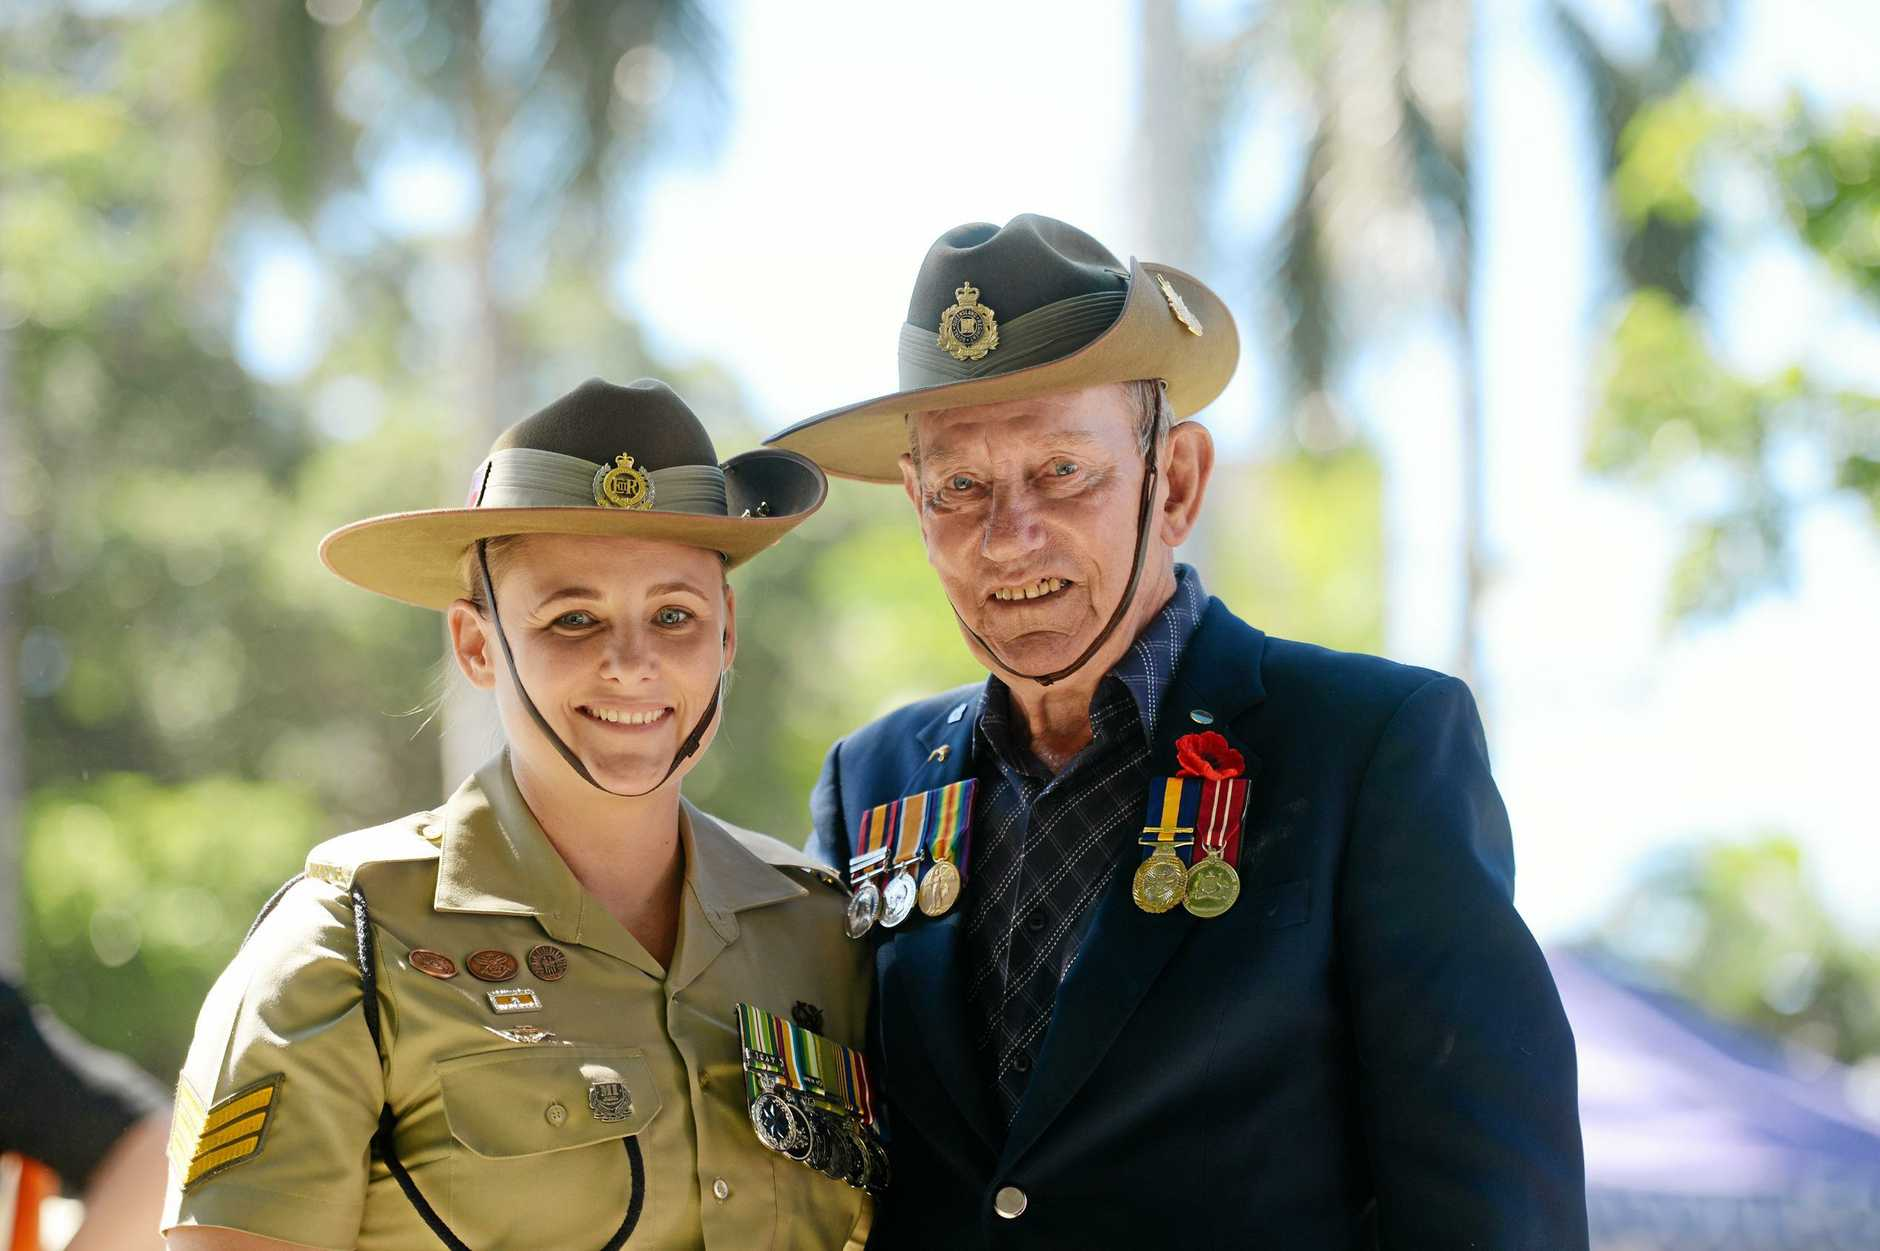 ANZAC day service at Jubilee Park, Mackay. Sgt Kelly Harding and Lt Cnl Brian Cuttriss